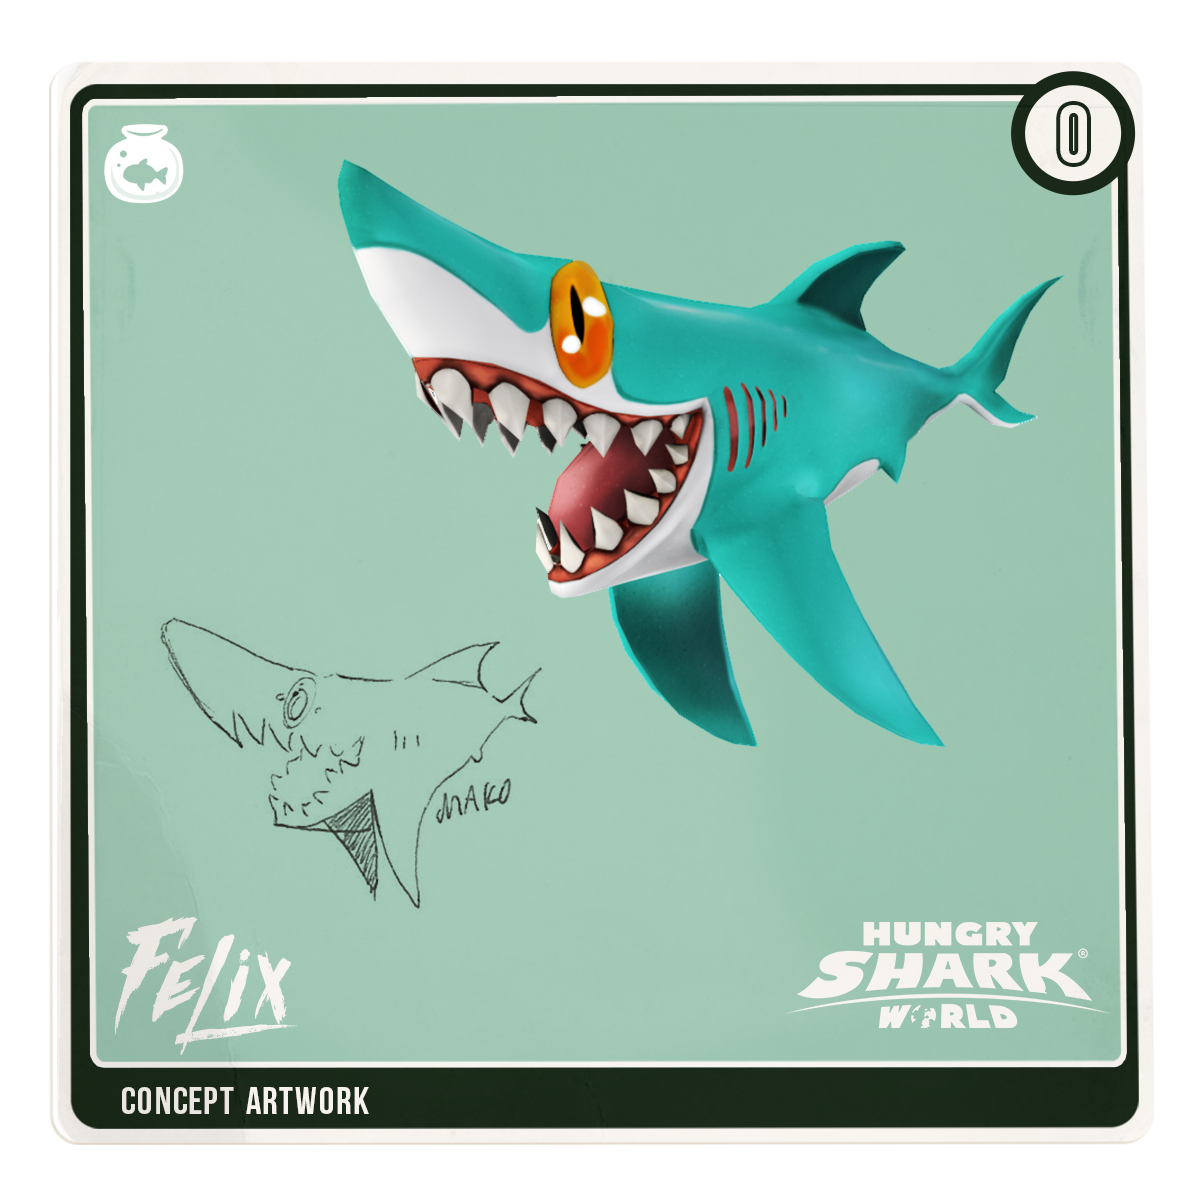 Clipart shark blacktip shark. Concept sharkarium card felix